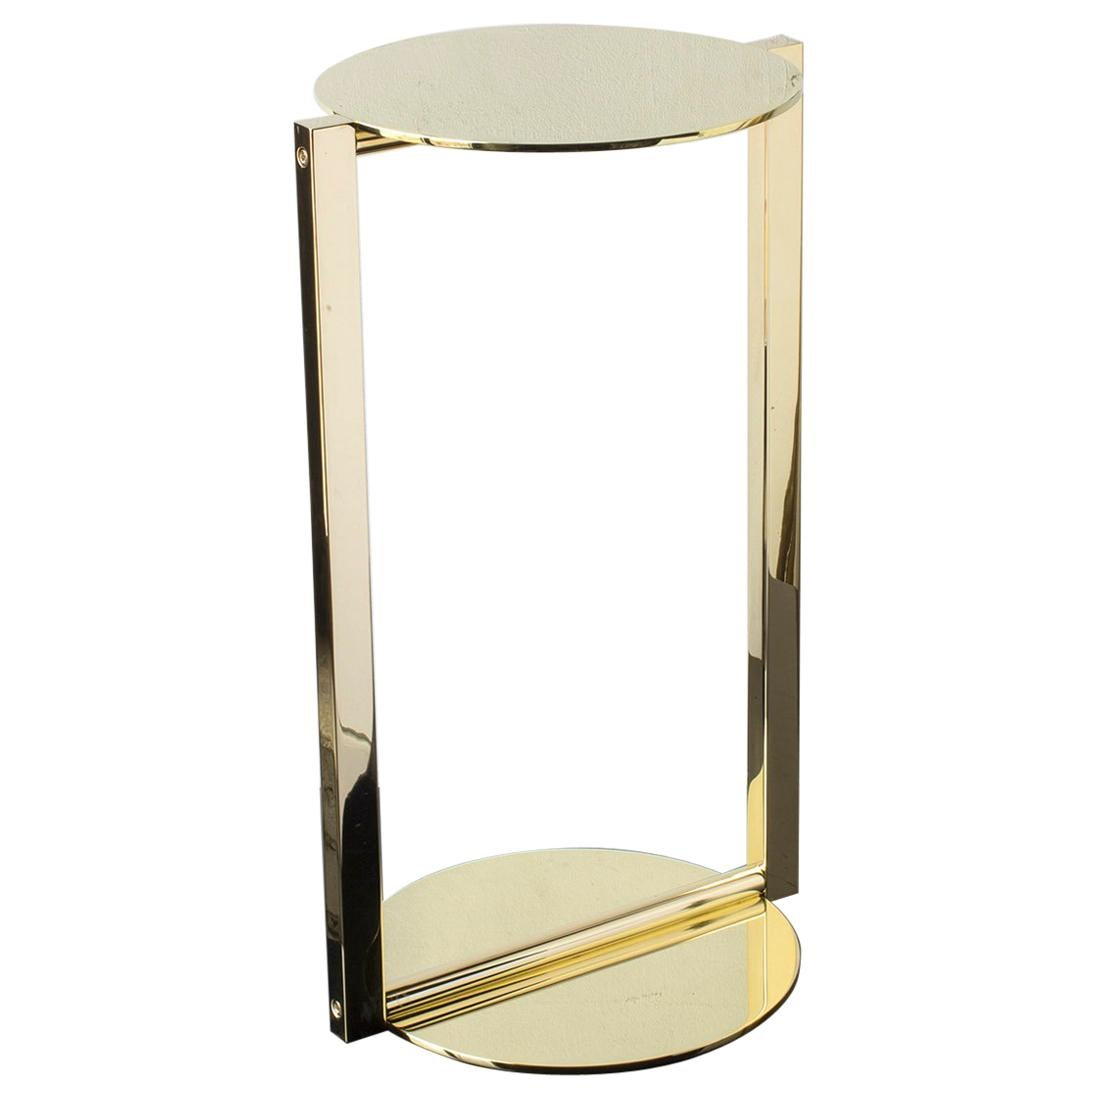 Untitled Side Table 2.0 Polished Brass Small Round Accent, End or Drink Tray